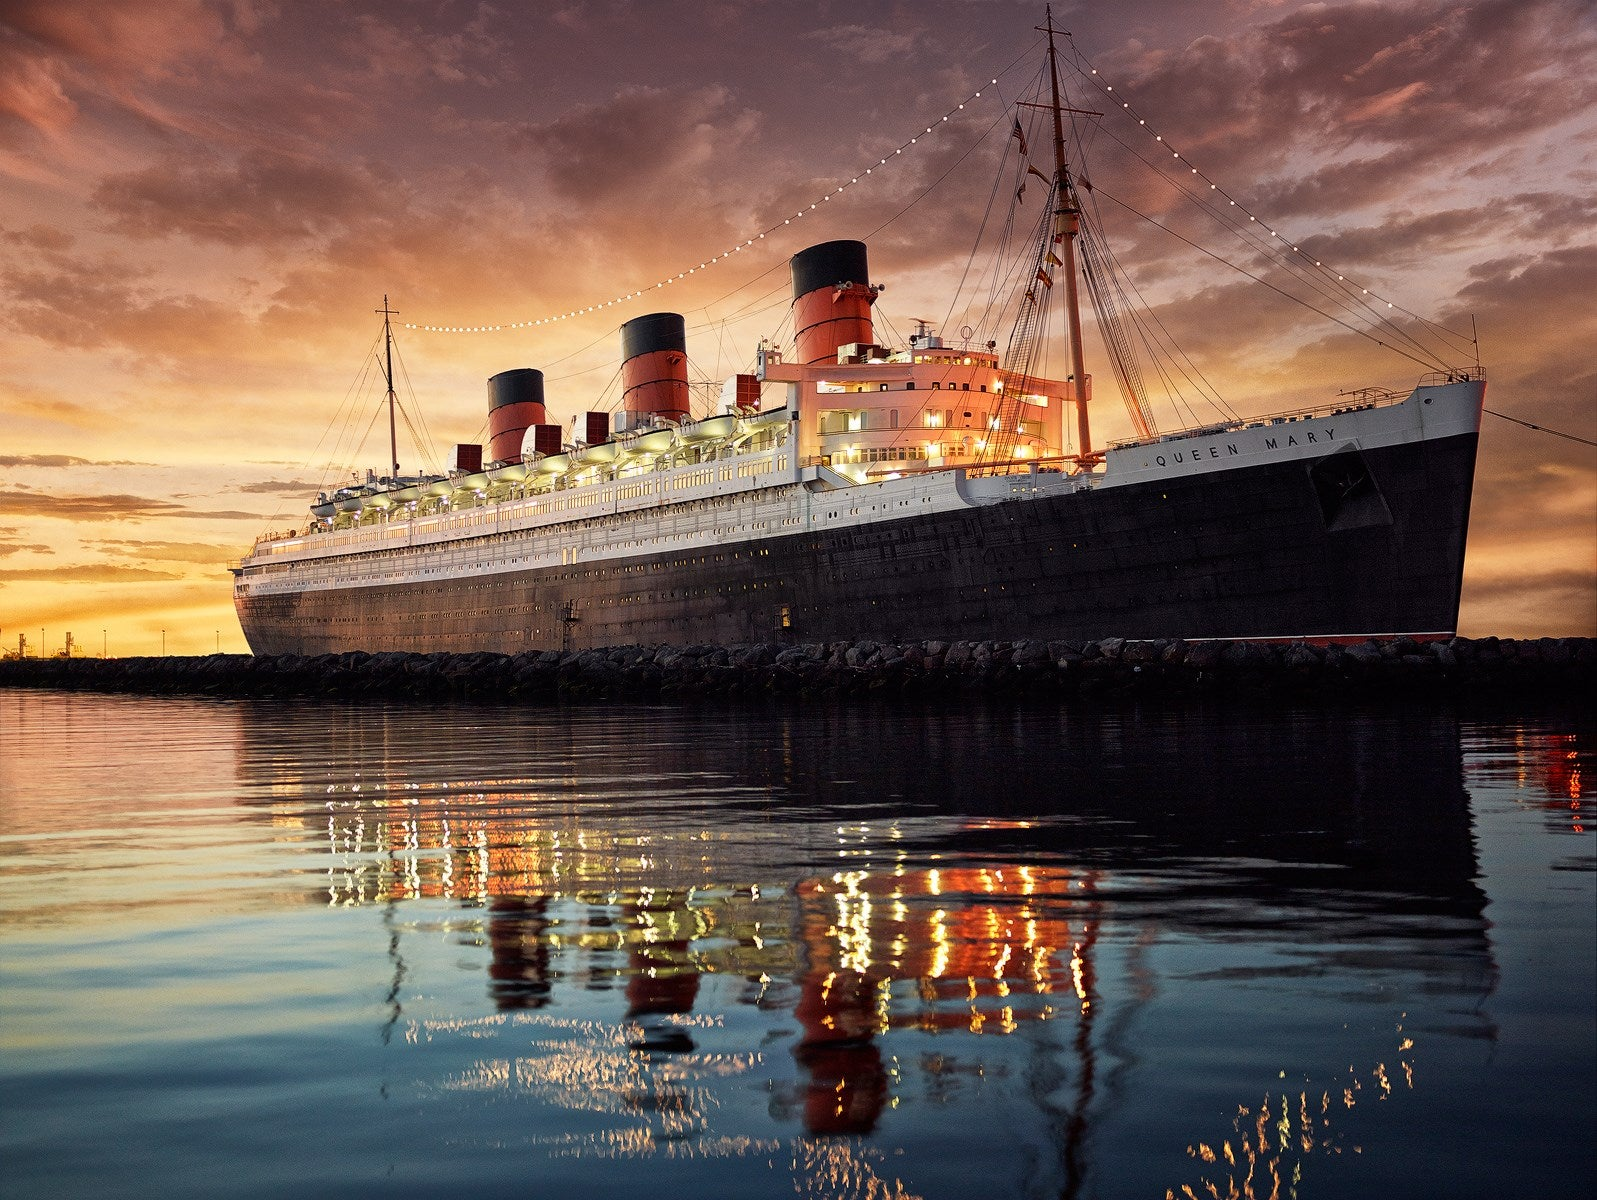 Denver Home Builders Queen Mary, Los Angeles: Tickets, Schedule, Seating Charts